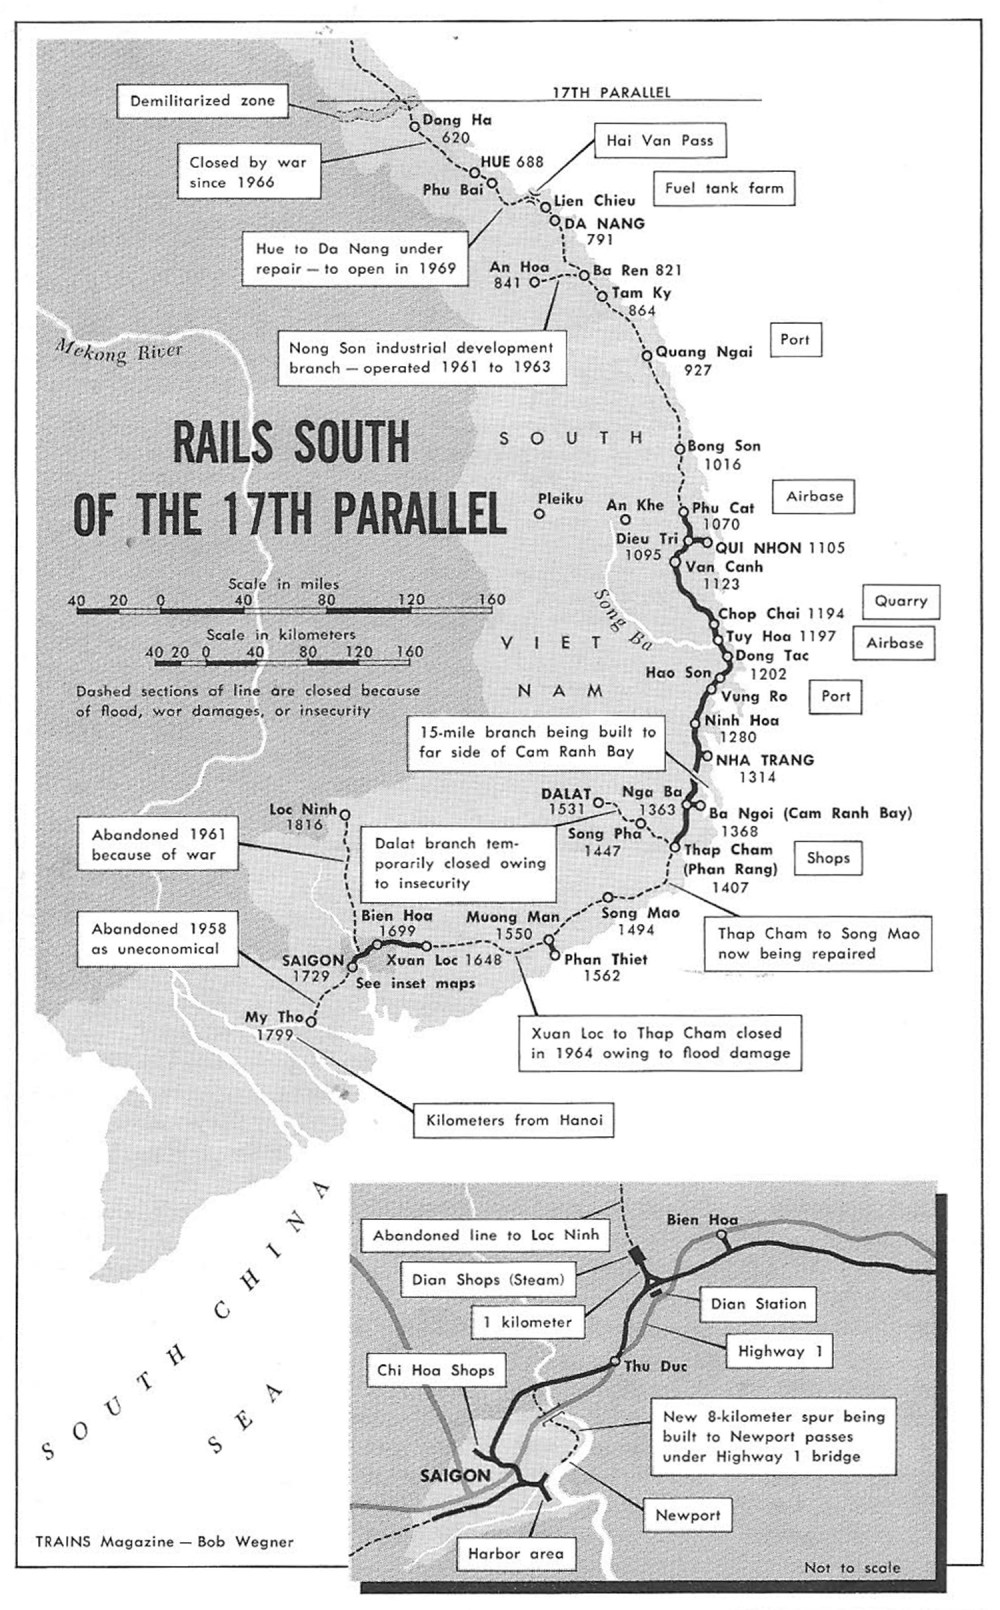 medium resolution of by the end of 1964 more damage had been inflicted on the south vietnamese railway system in a two month period that in 15 years of world war ii and the